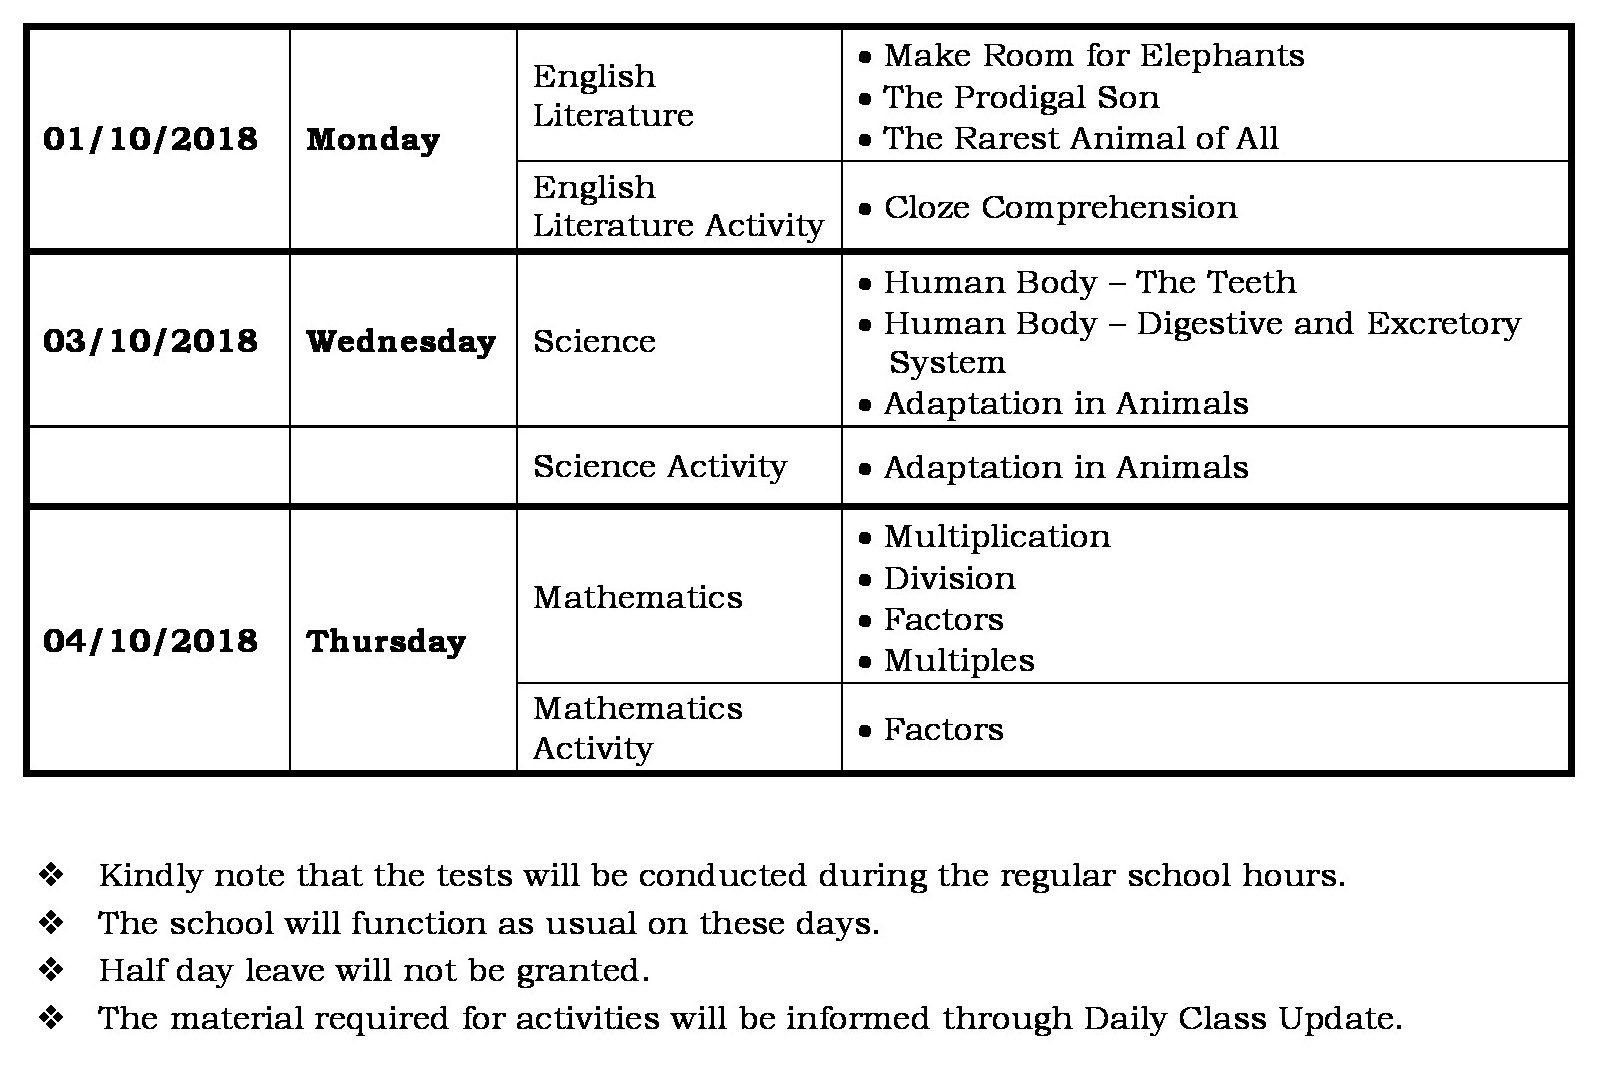 FA 2- Portion and Schedule